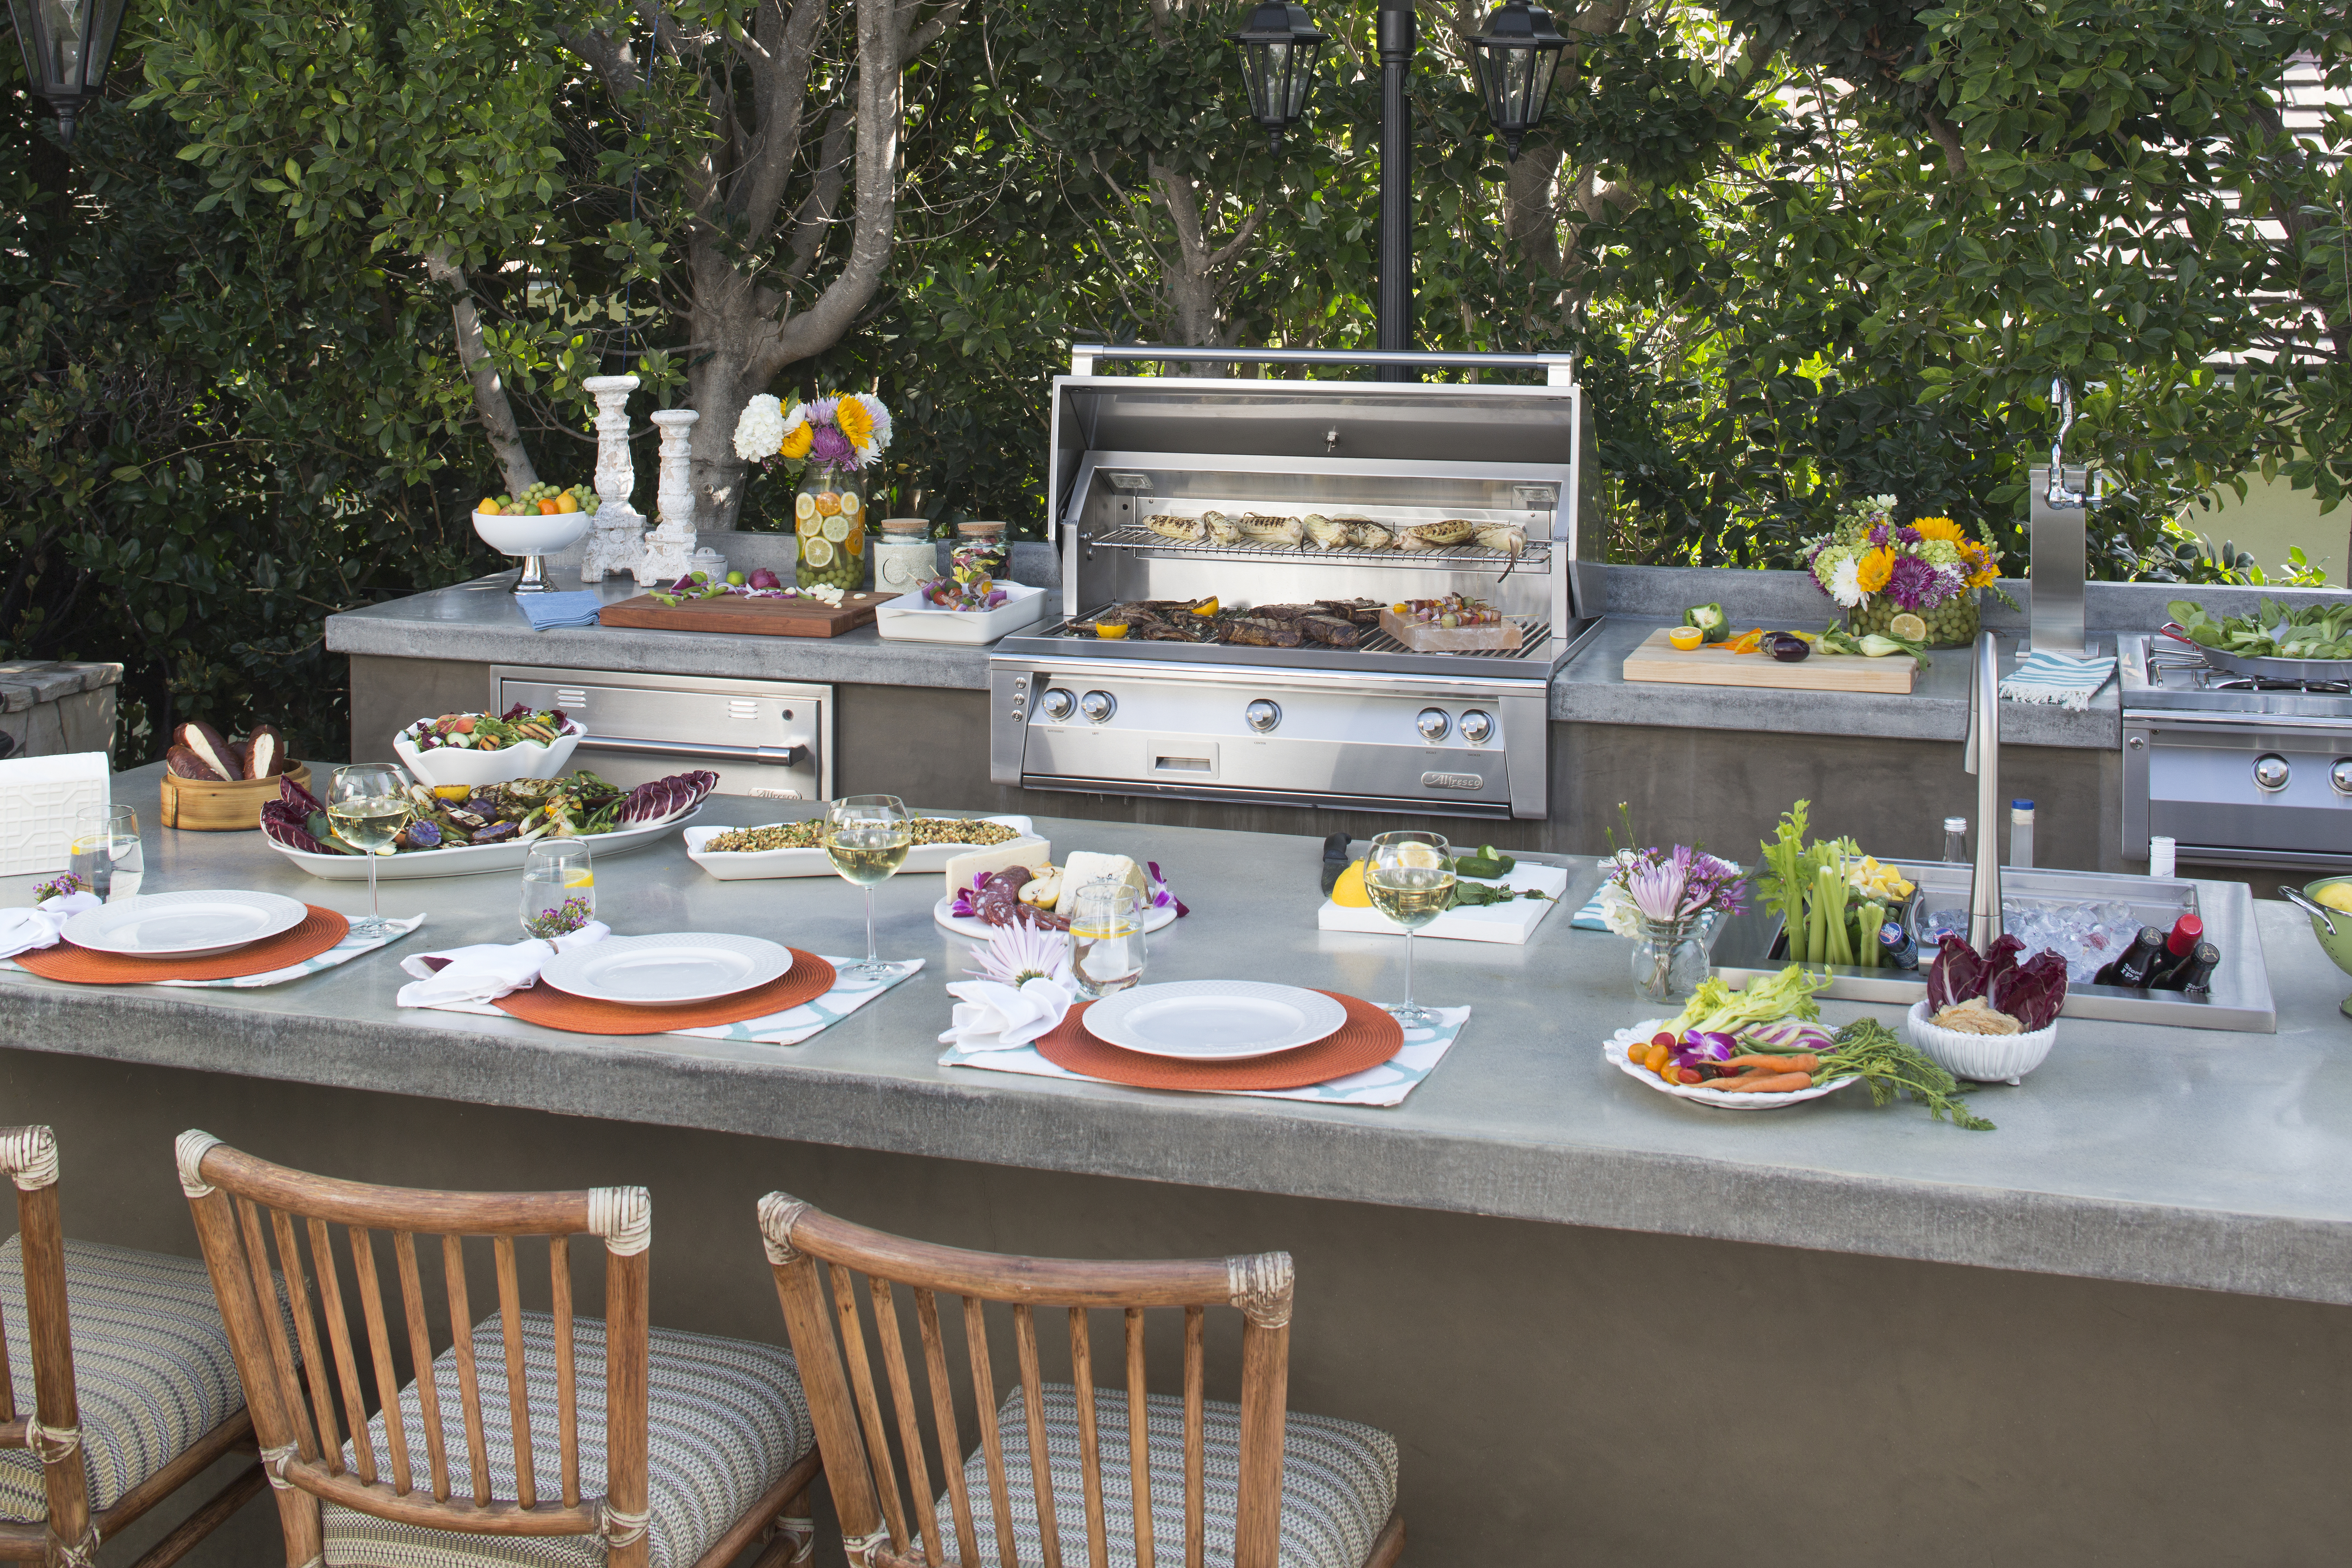 Alfresco Grills sets the bar pretty high for luxury outdoor appliances and we can see why. Who wouldn't want to pull a stool up to this kitchen and enjoy dinner outdoors?